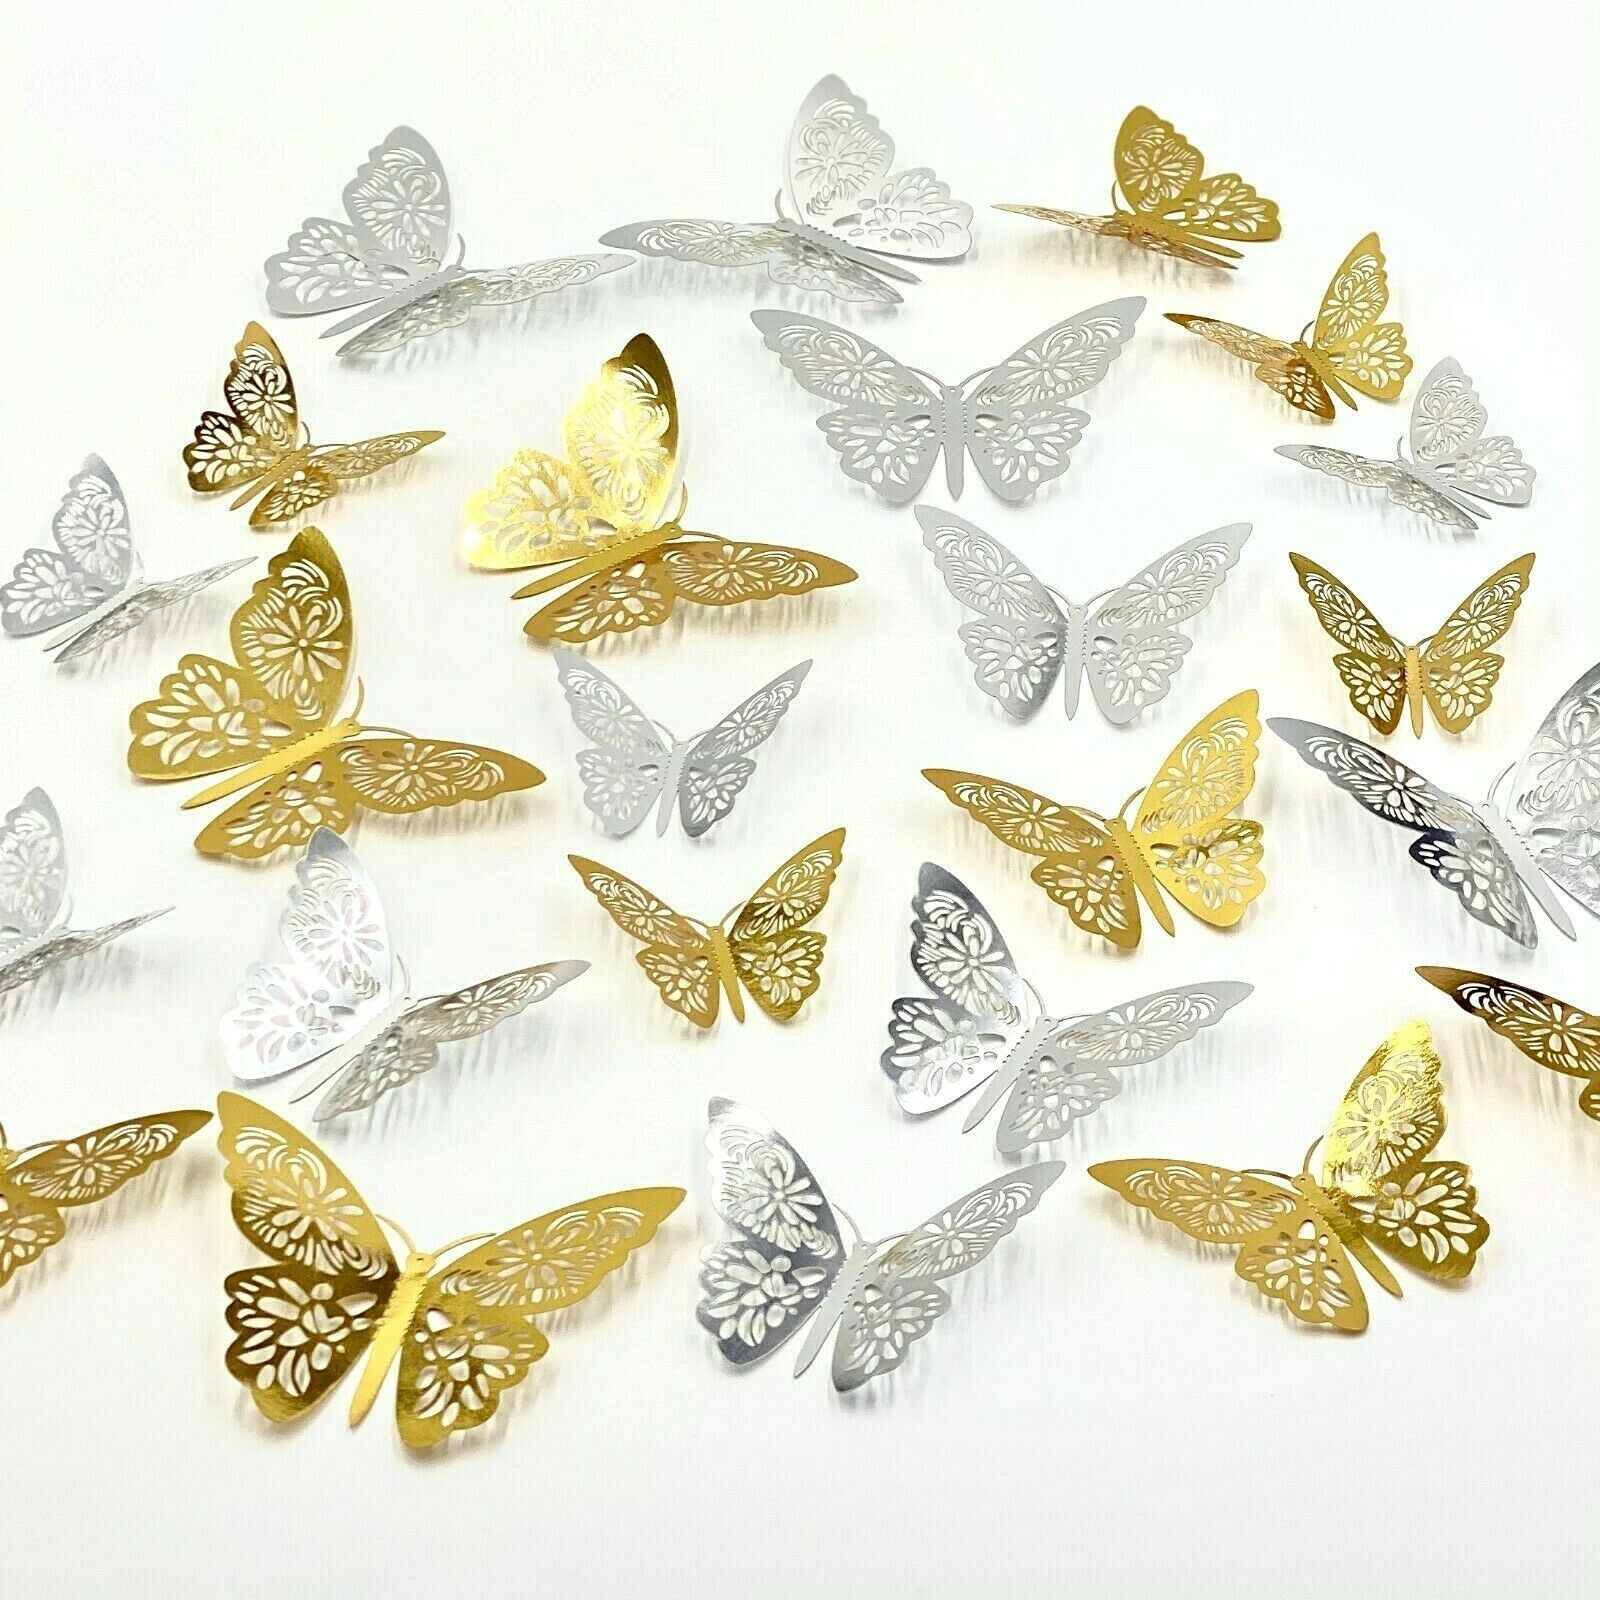 Home Decoration - 12pcs 3D Butterfly Wall Stickers Art Decals Home All Room Decorations Decor Kid